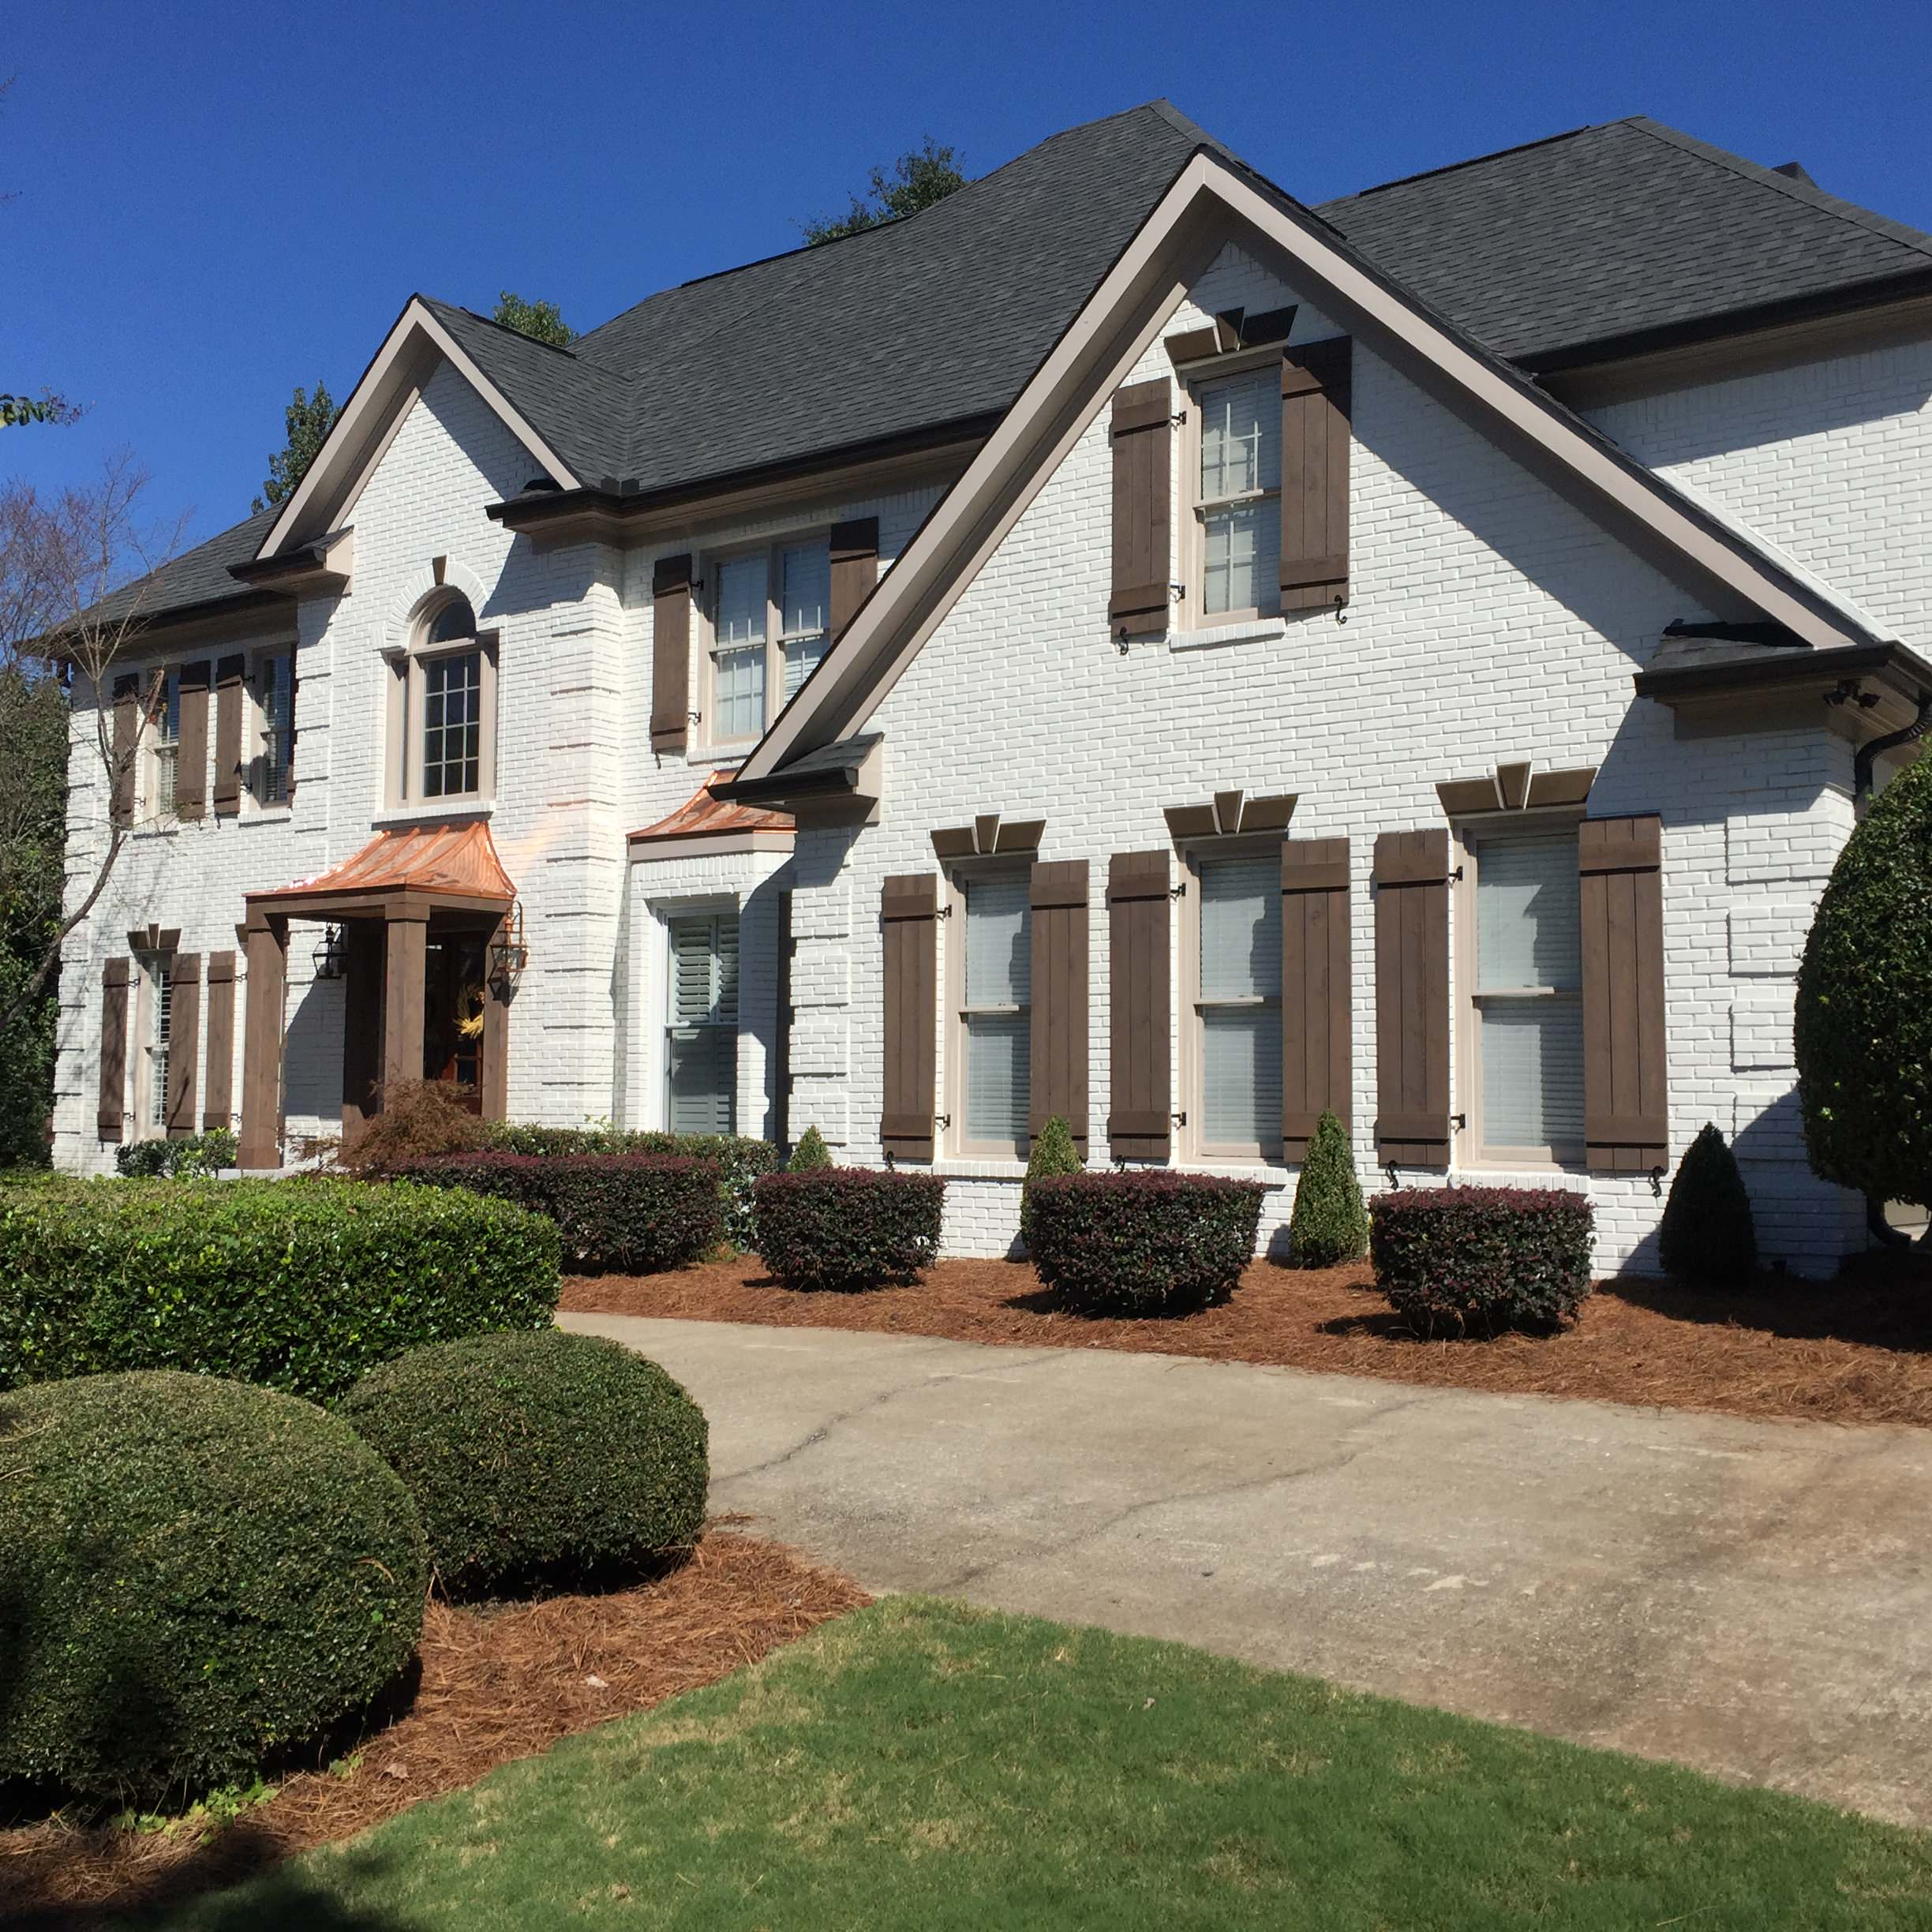 French Country Exterior Face Lift